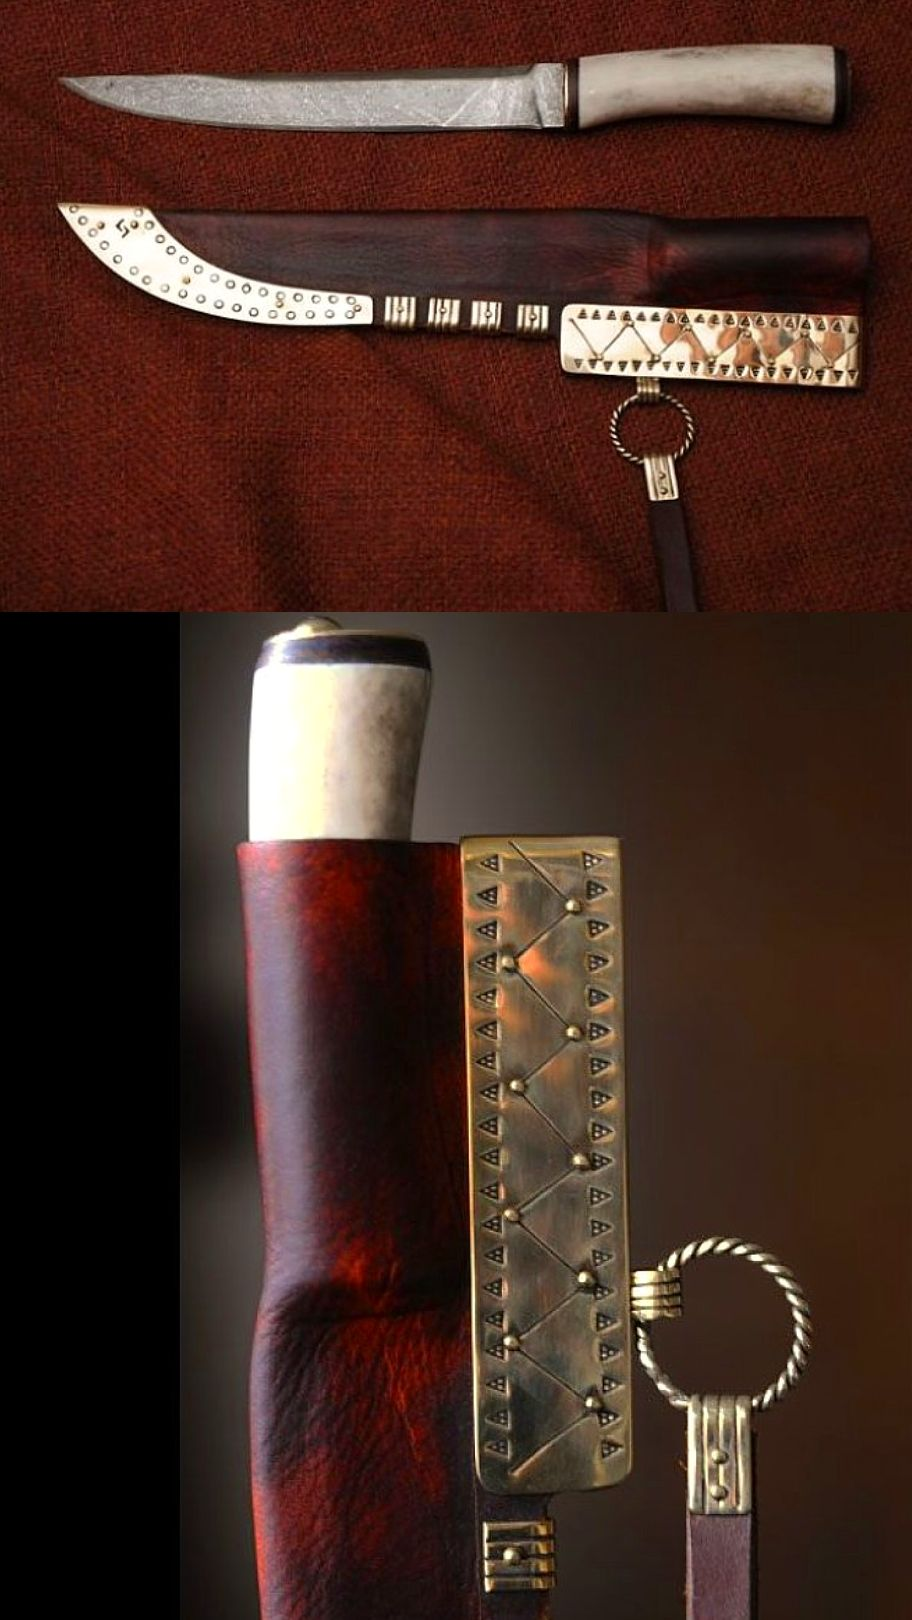 Viking leather sheath Pattren welded blade with handle made with deer antler, leather and brass fittings. Sheath made of waxed leather with brass bindings decorated with stamped ornaments, a leather strap to hang the knife on a belt. http://jorgencraft.com/index.php?route=product/category&path=95 http://jorgencraft.com/index.php?route=common/home